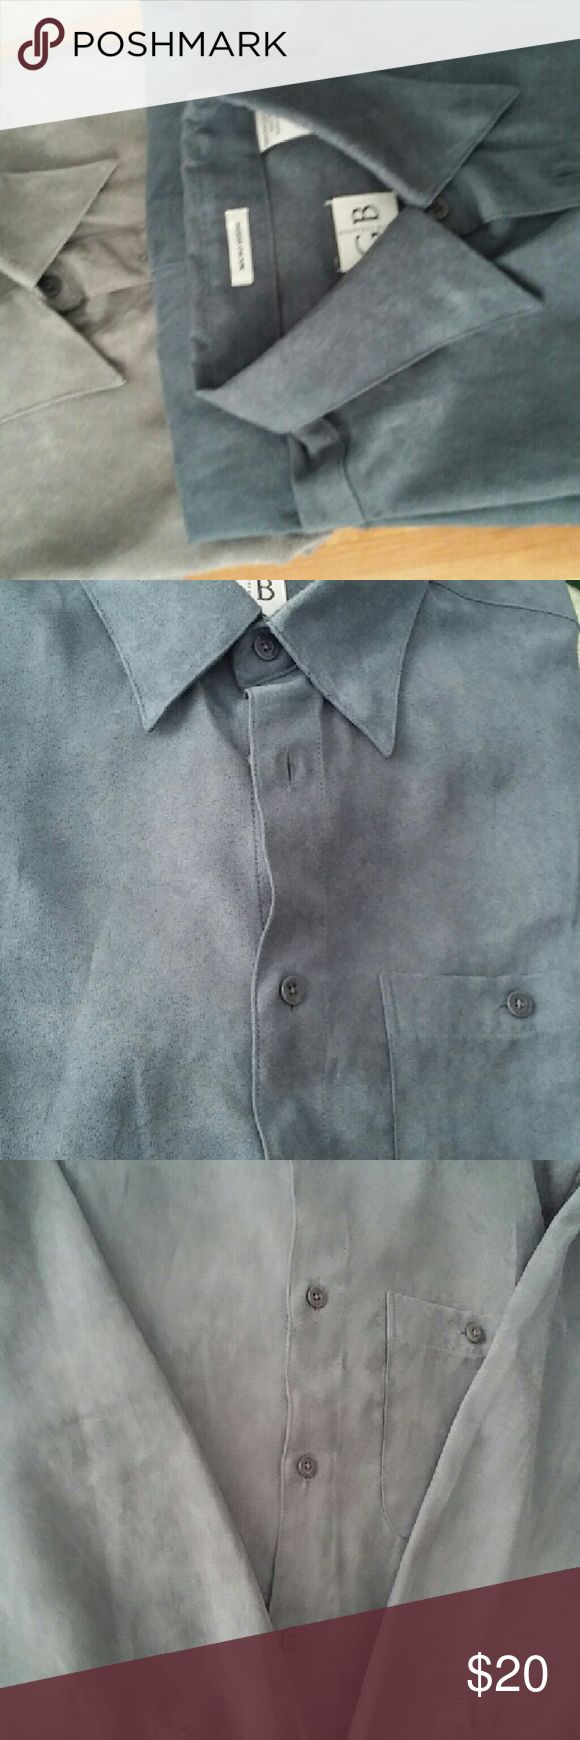 Lot of 2 Geoffrey Beene Men's Micro Suede LS Shirt Lot of 2 Men's shirts. Gray Long Sleeve Micro Suede men's Shirt. Medium and also a Tan Micro Suede men's shirt, medium.  Like New condition. Polyester. Made in Bangladesh. Geoffrey Beene Shirts Casual Button Down Shirts